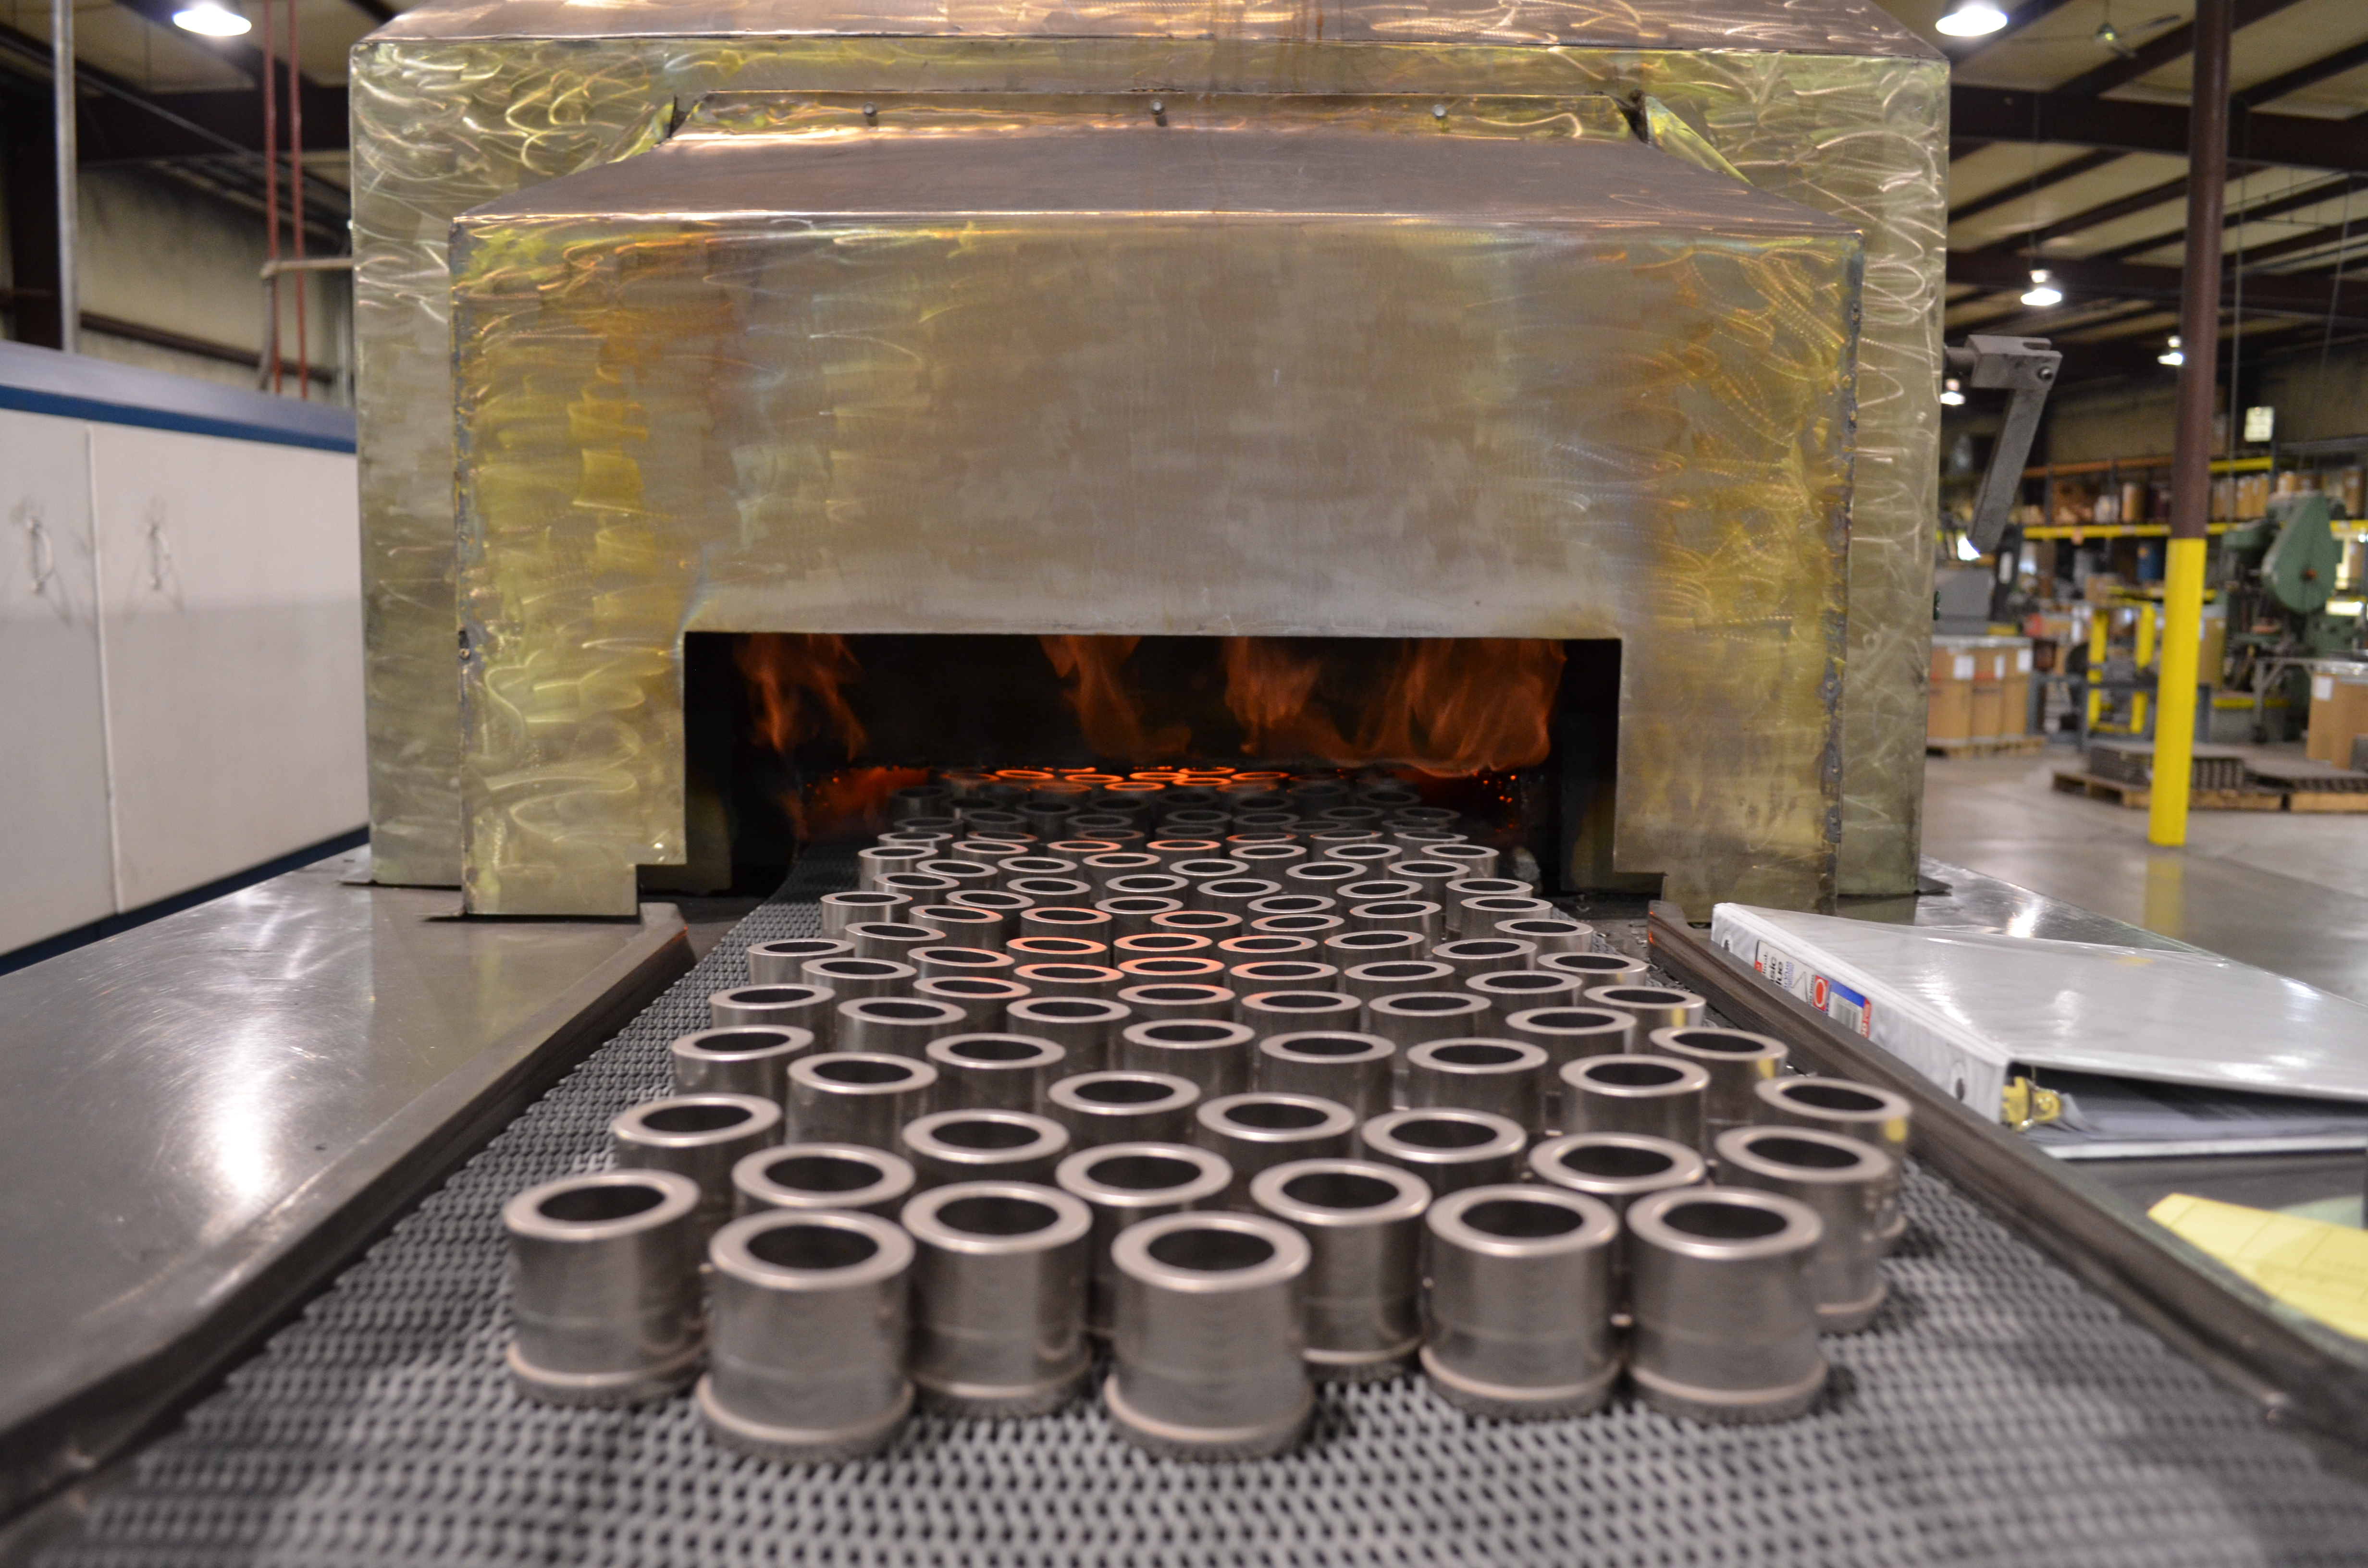 Carbon steel powdered metal parts entering a sintering furnace